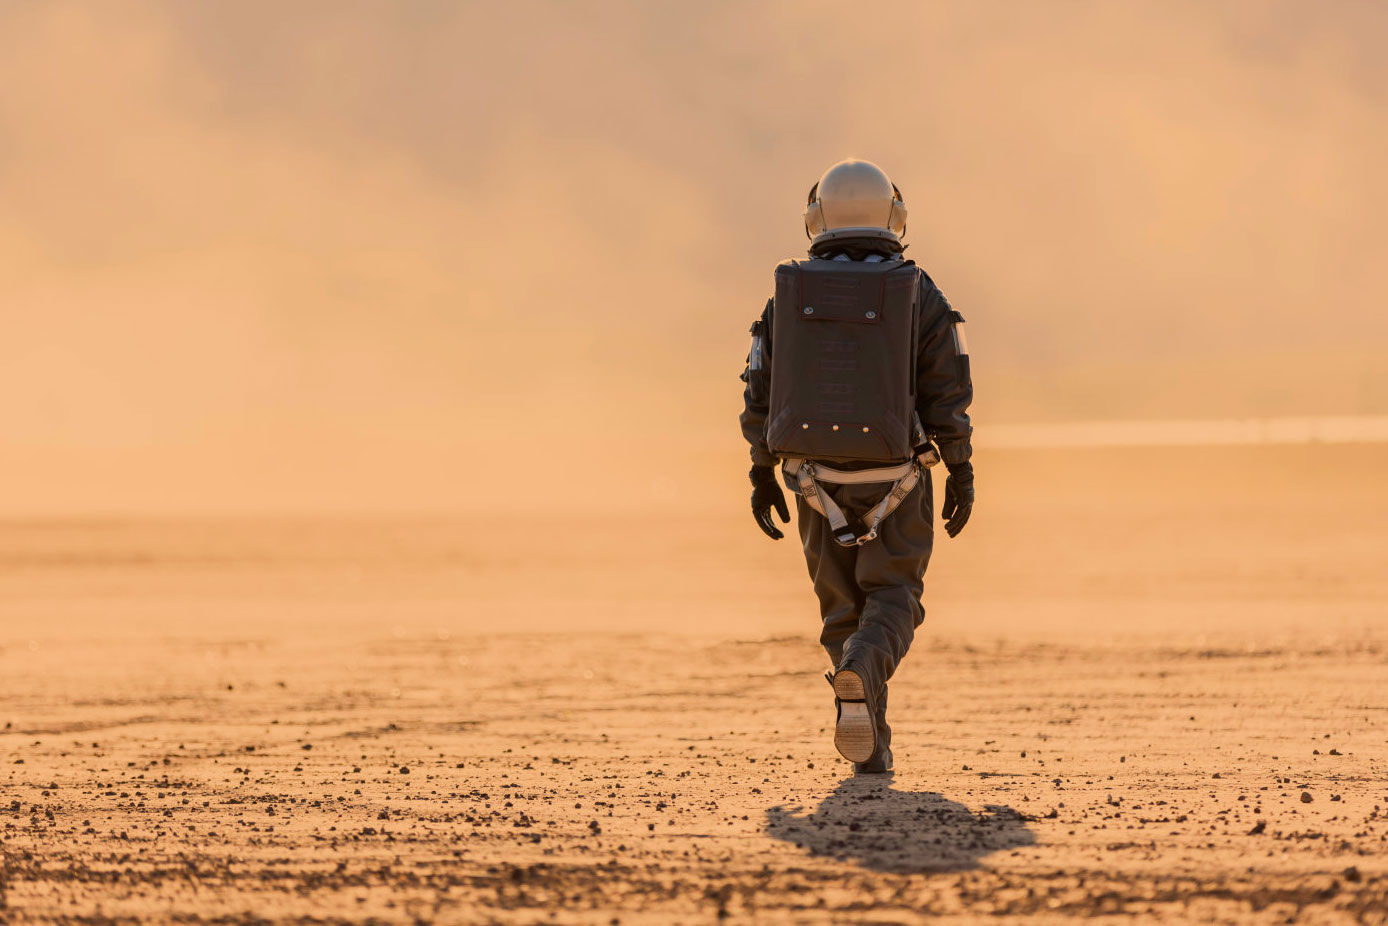 Mars One says new investor could save it from bankruptcy